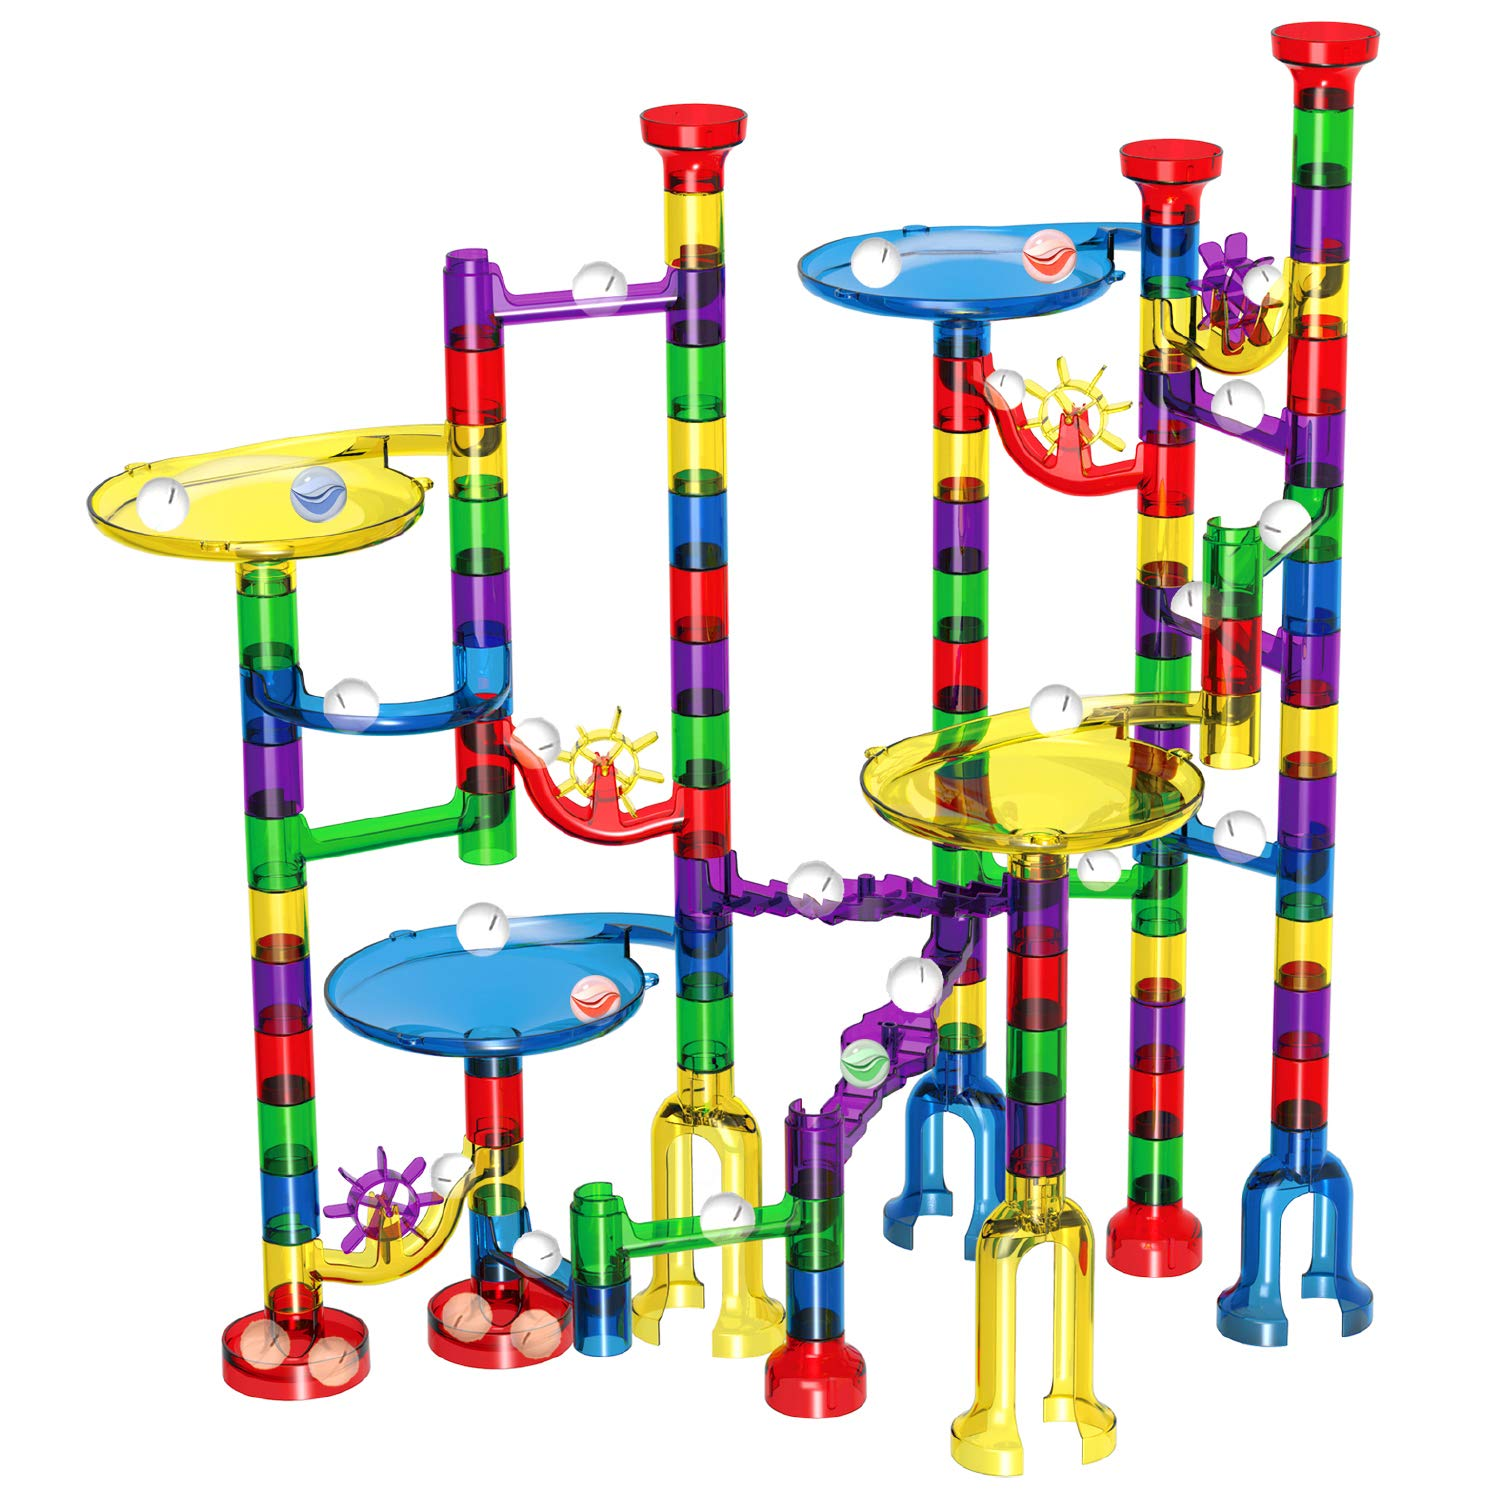 Marble Run Set, Glonova 127 Pcs Marble Race Track for Kids with Glass Marbles Upgrade Marble Works Set